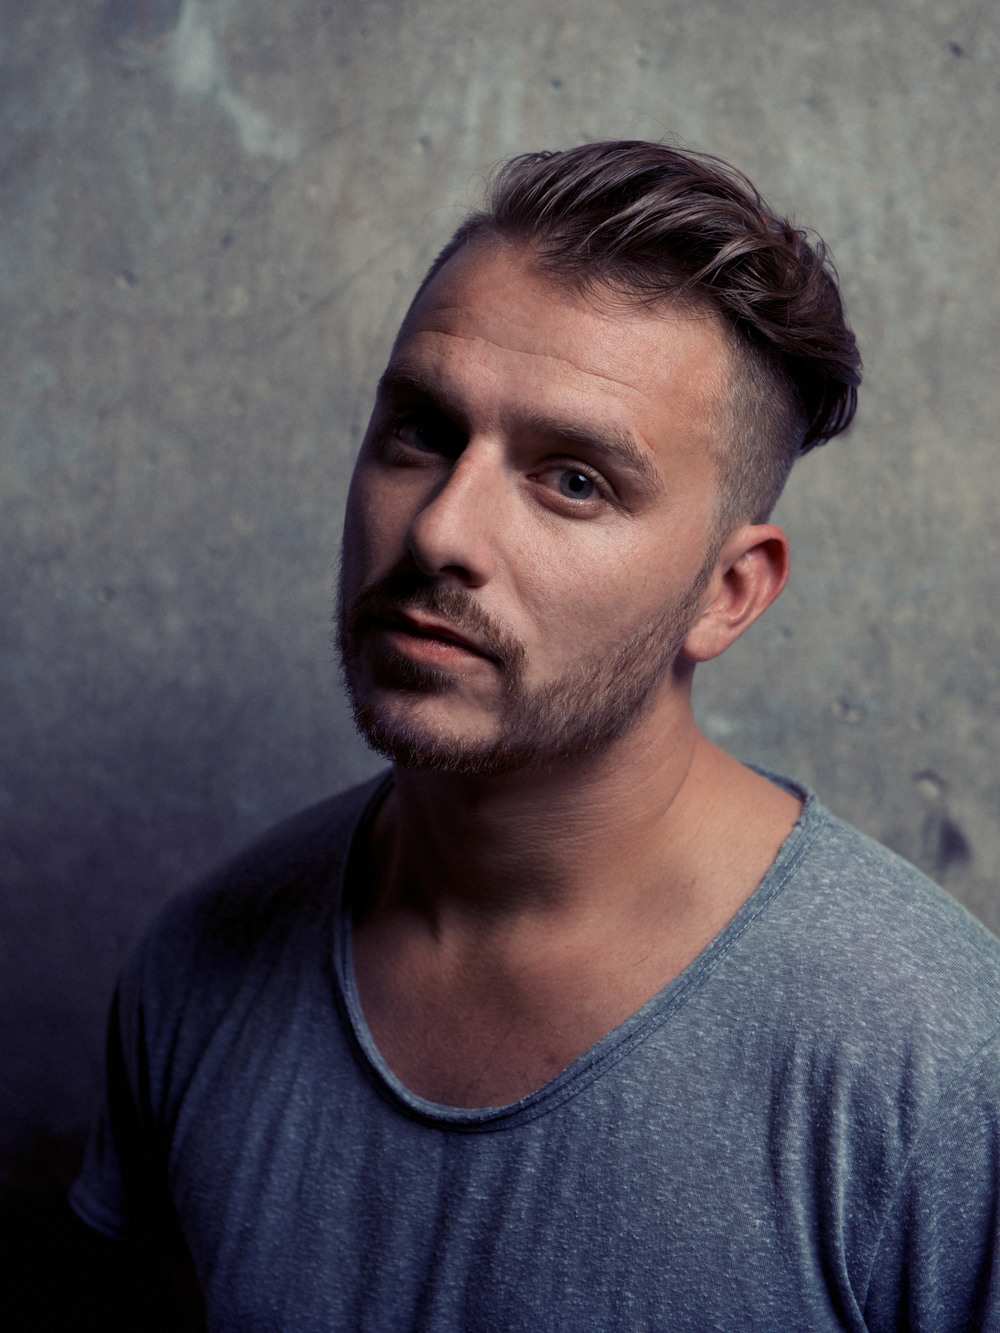 Dapper Laughs, Daniel O'Reilly photographed for Sony music.